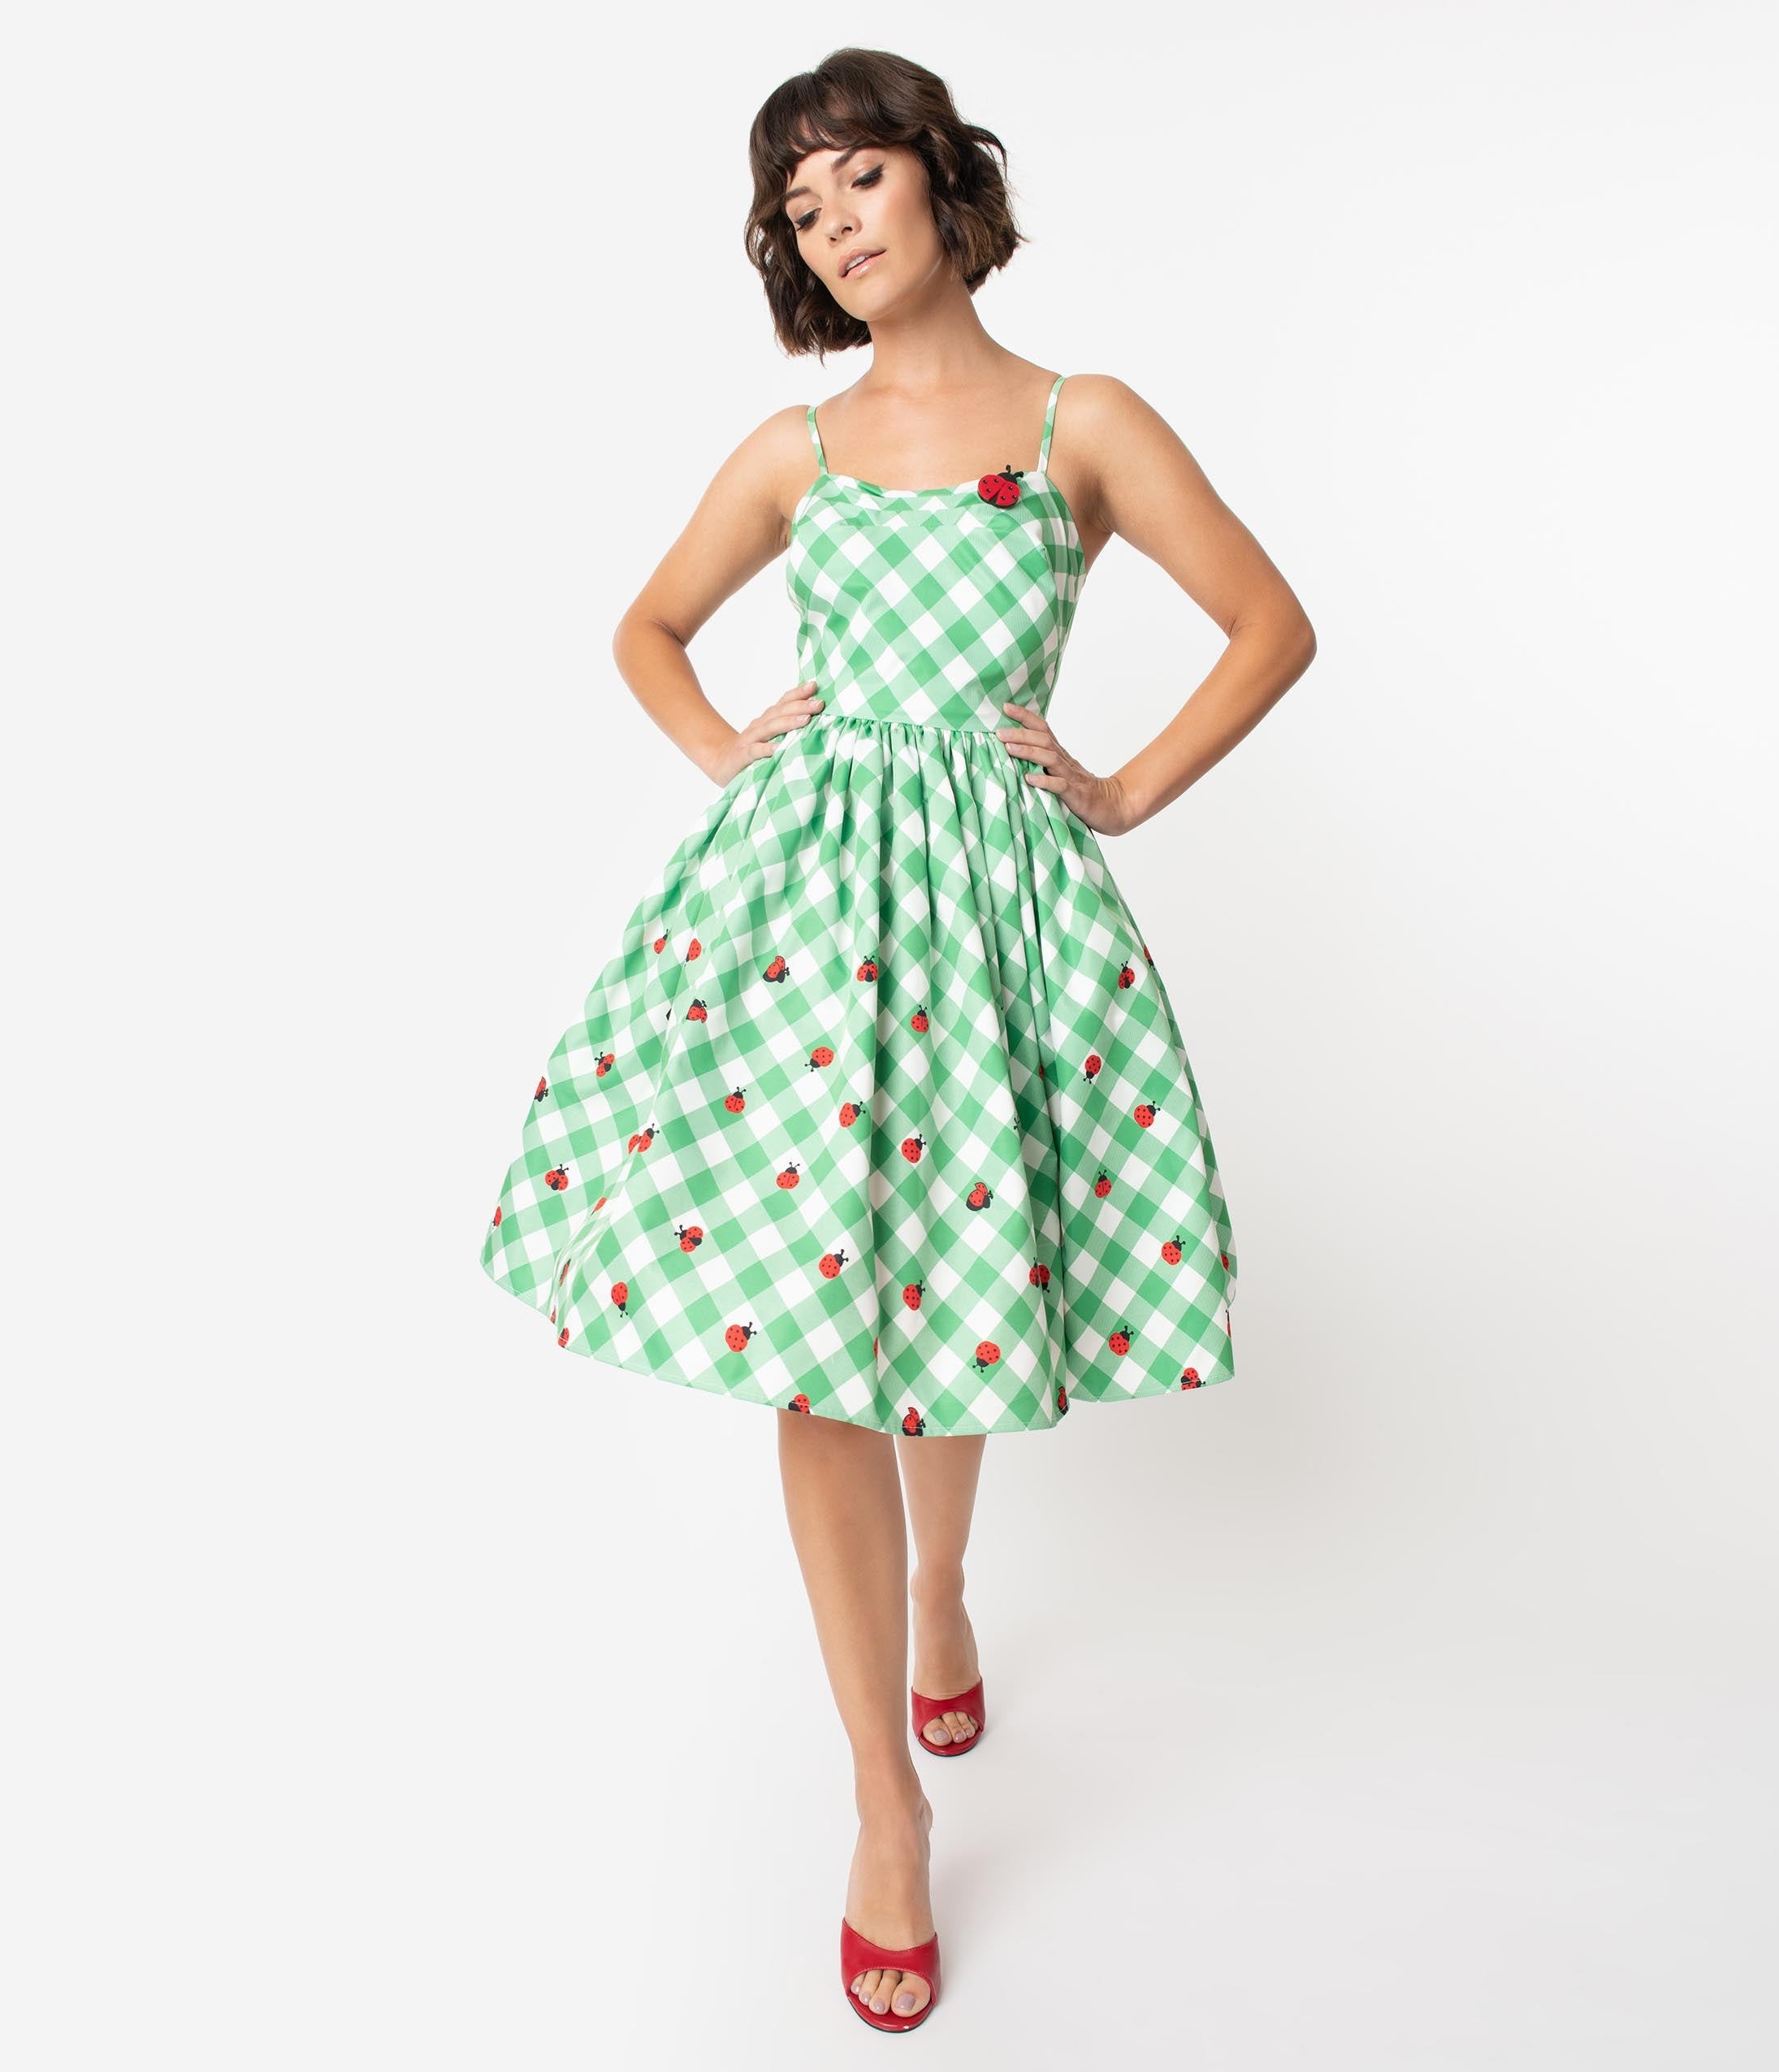 1950s Dresses, 50s Dresses | 1950s Style Dresses Unique Vintage 1950S Green  White Gingham Ladybug Darcy Swing Dress $110.00 AT vintagedancer.com